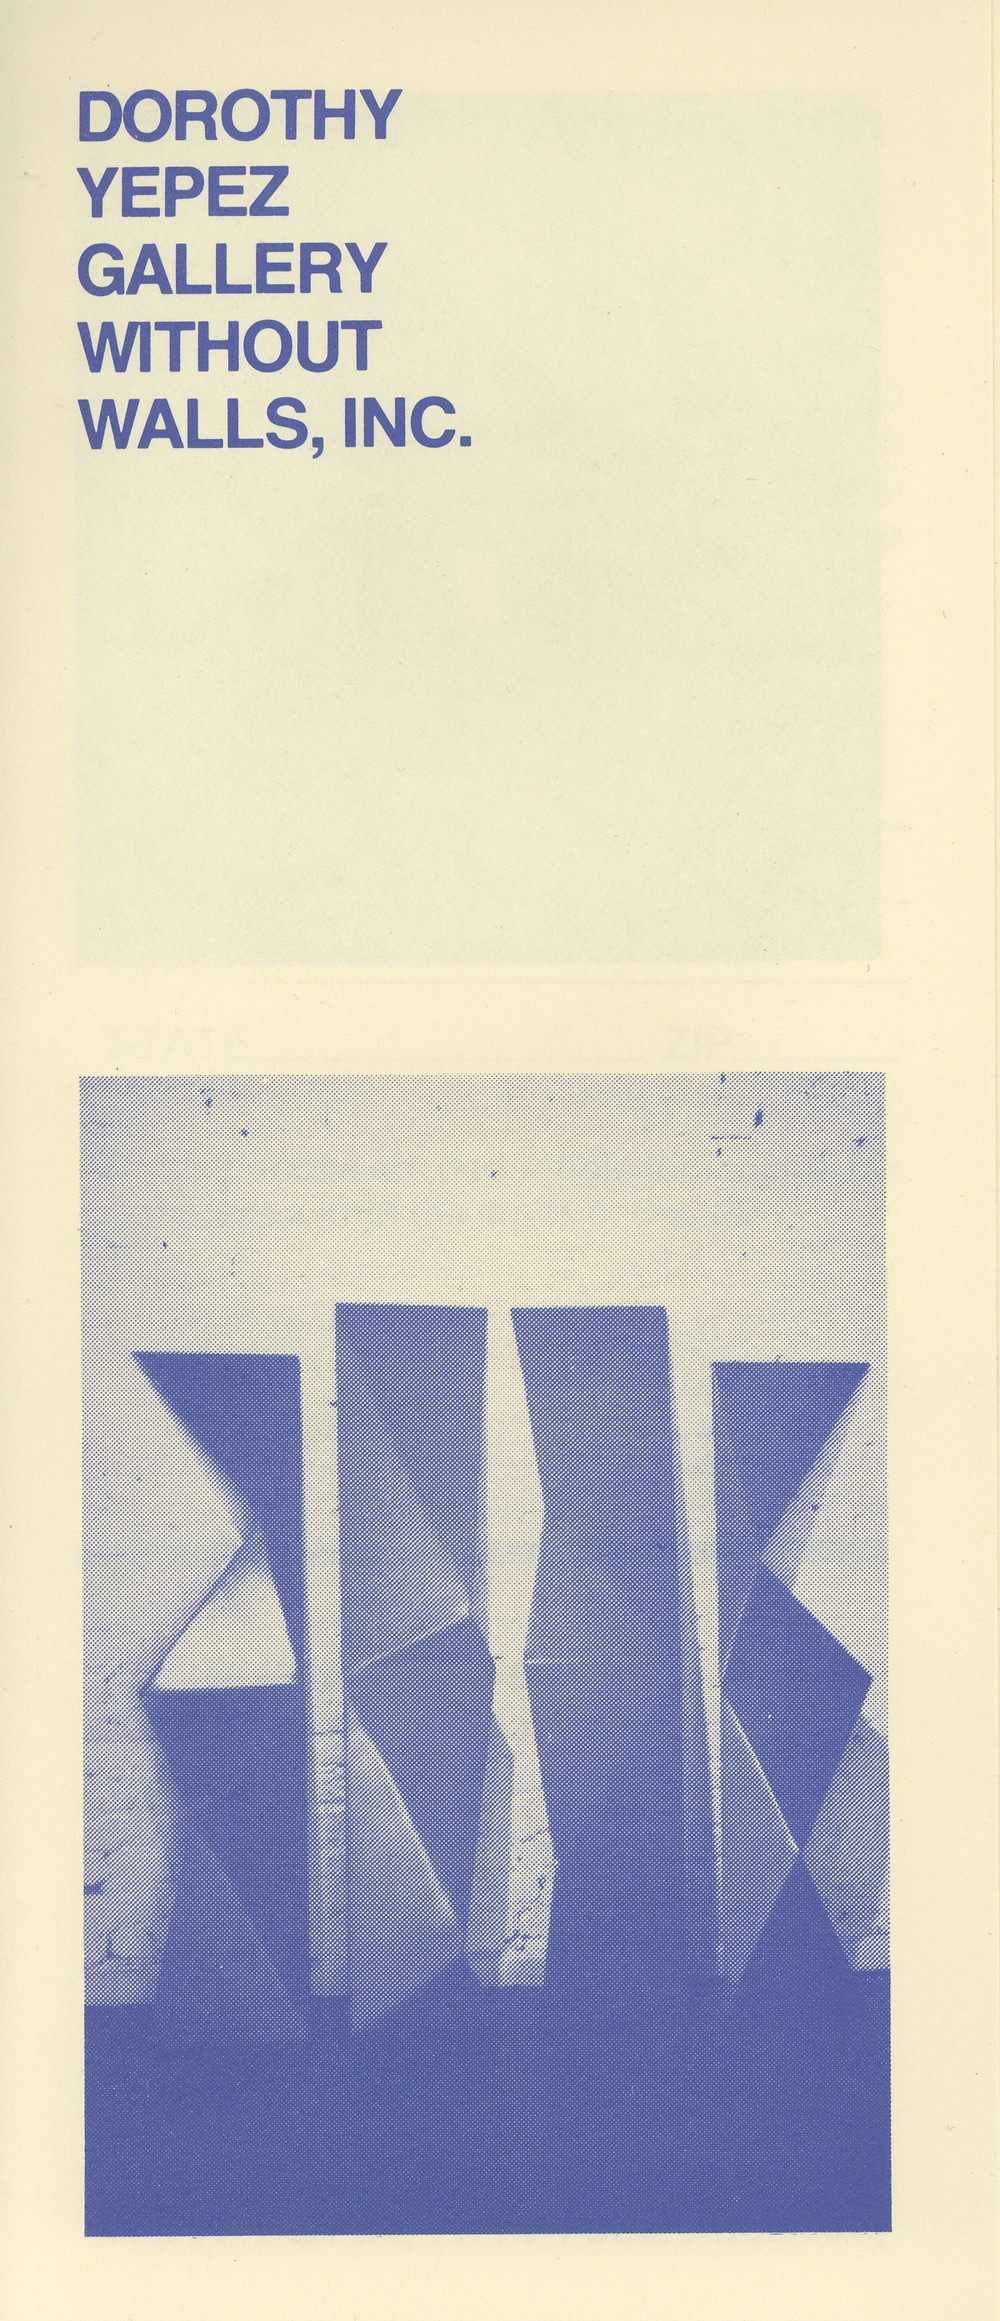 Brochure of Dorothy Yepez Gallery Without Walls, Inc., undated